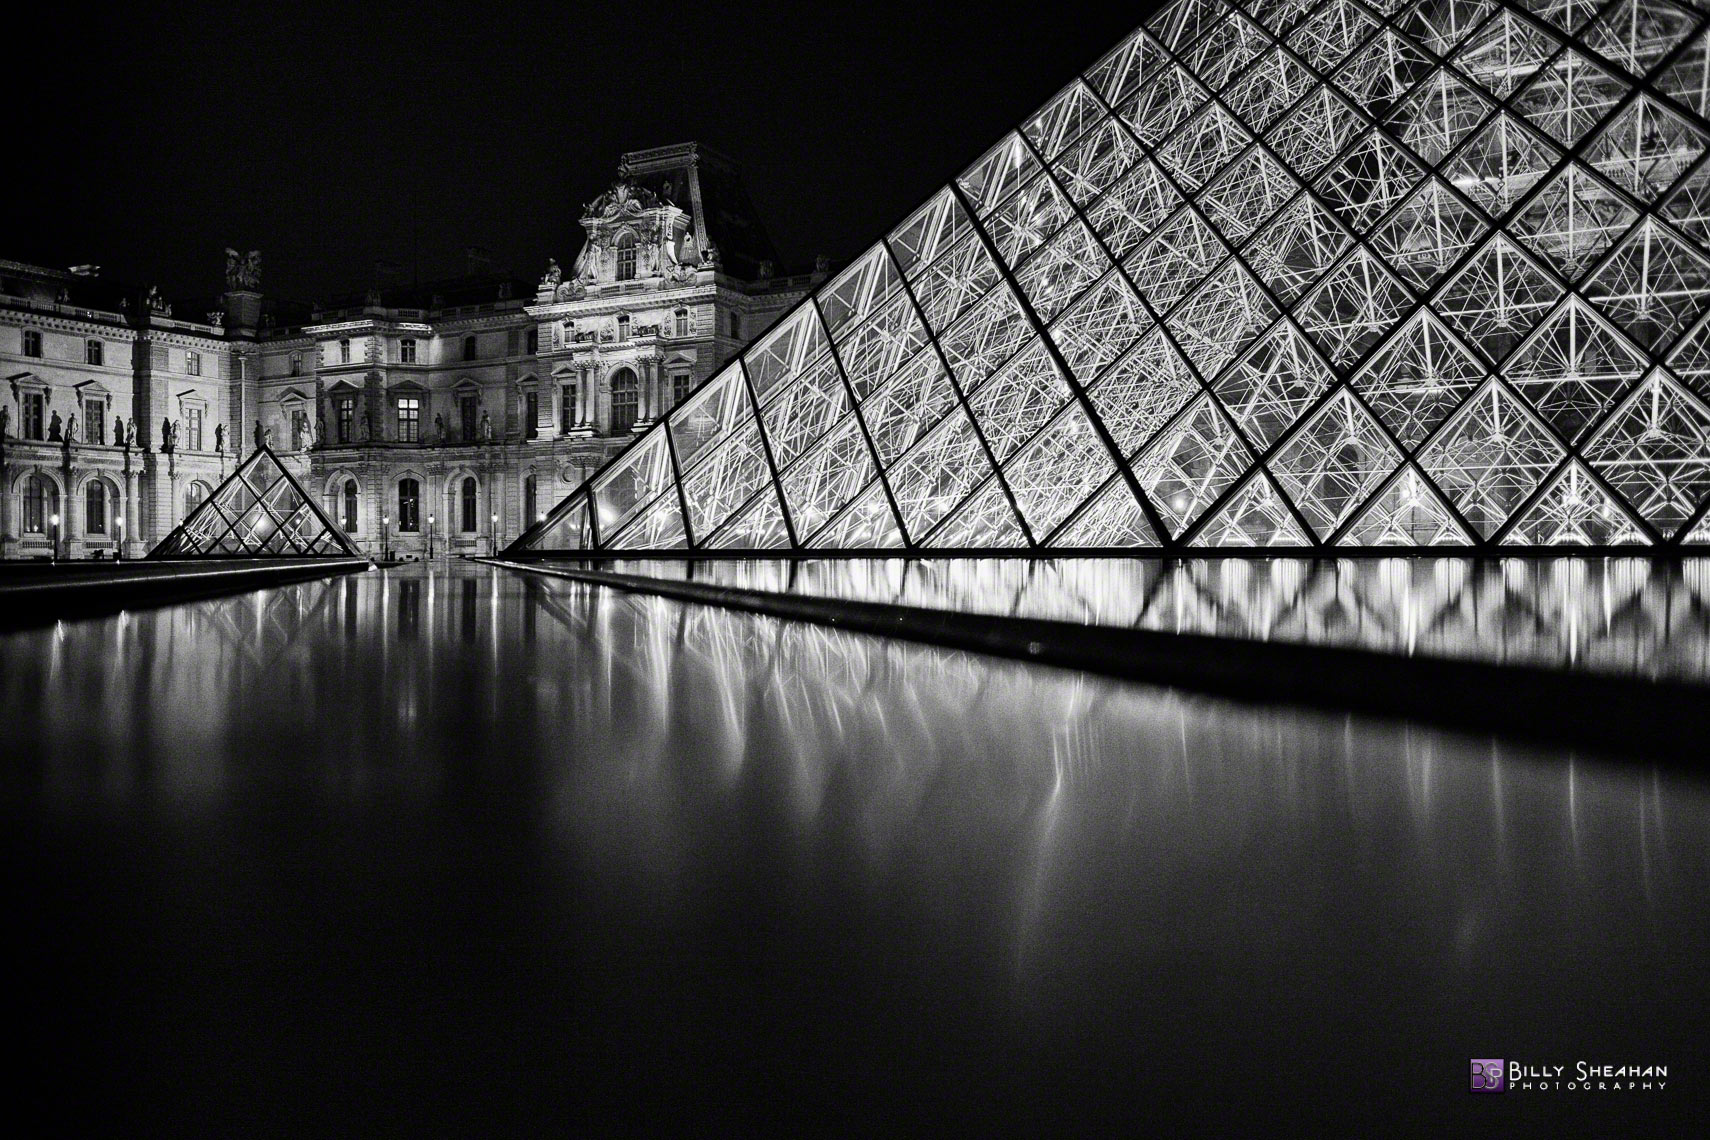 La_musee_du_Louvre__Paris__France_Paris2008_25Apr2008_0810_BW_D